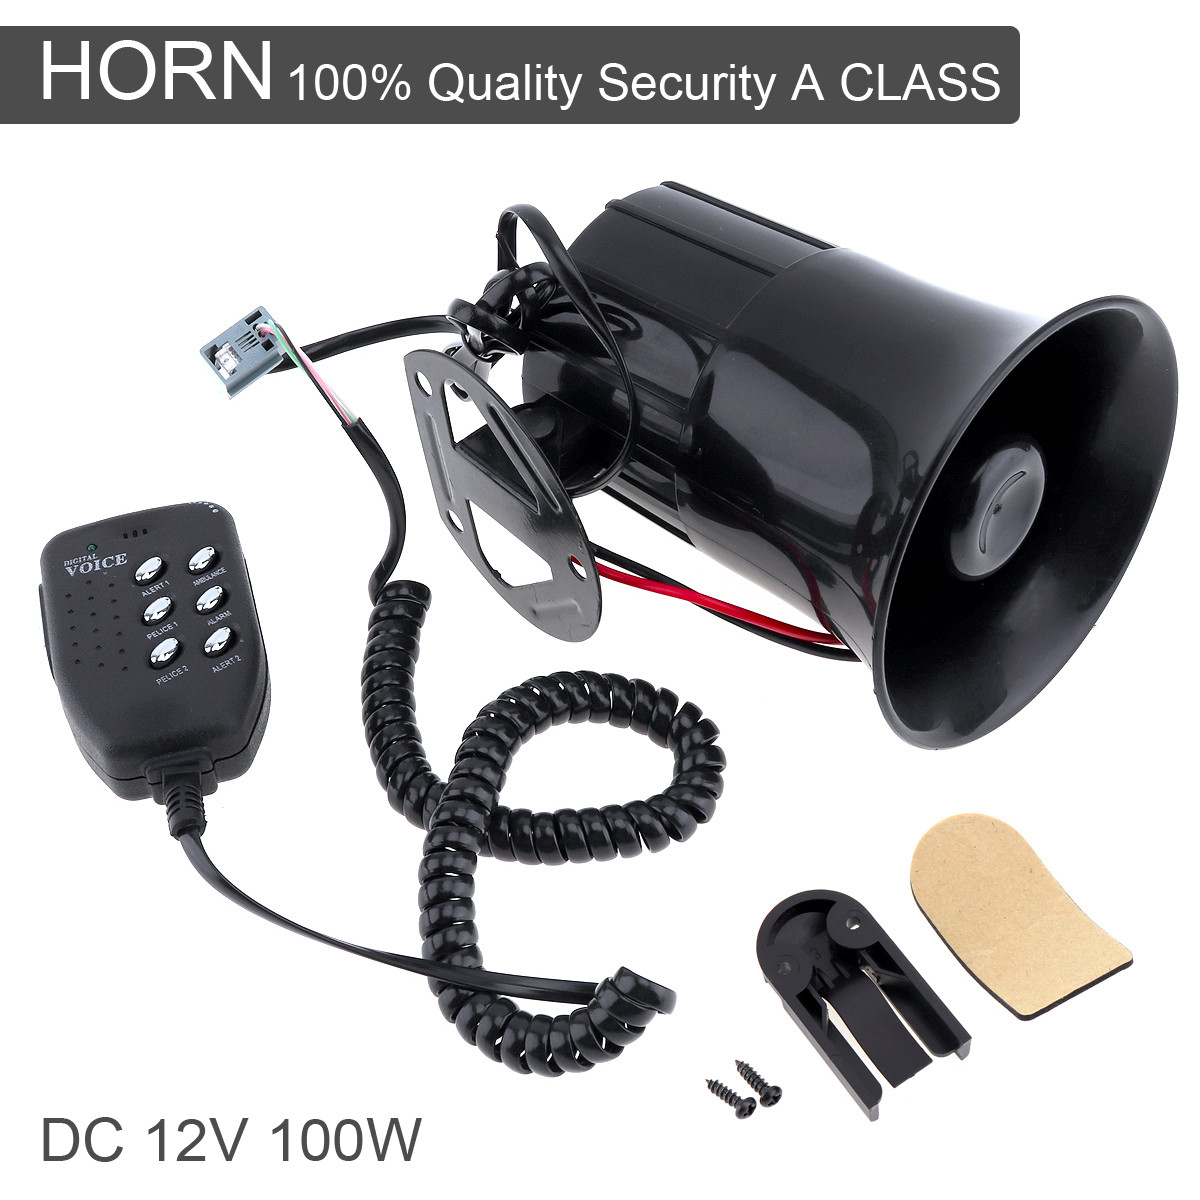 Loud Car Horn >> Car Horn Loud 100w 12v 6 Sound Car Speaker Loud Alarm Siren Horn 105